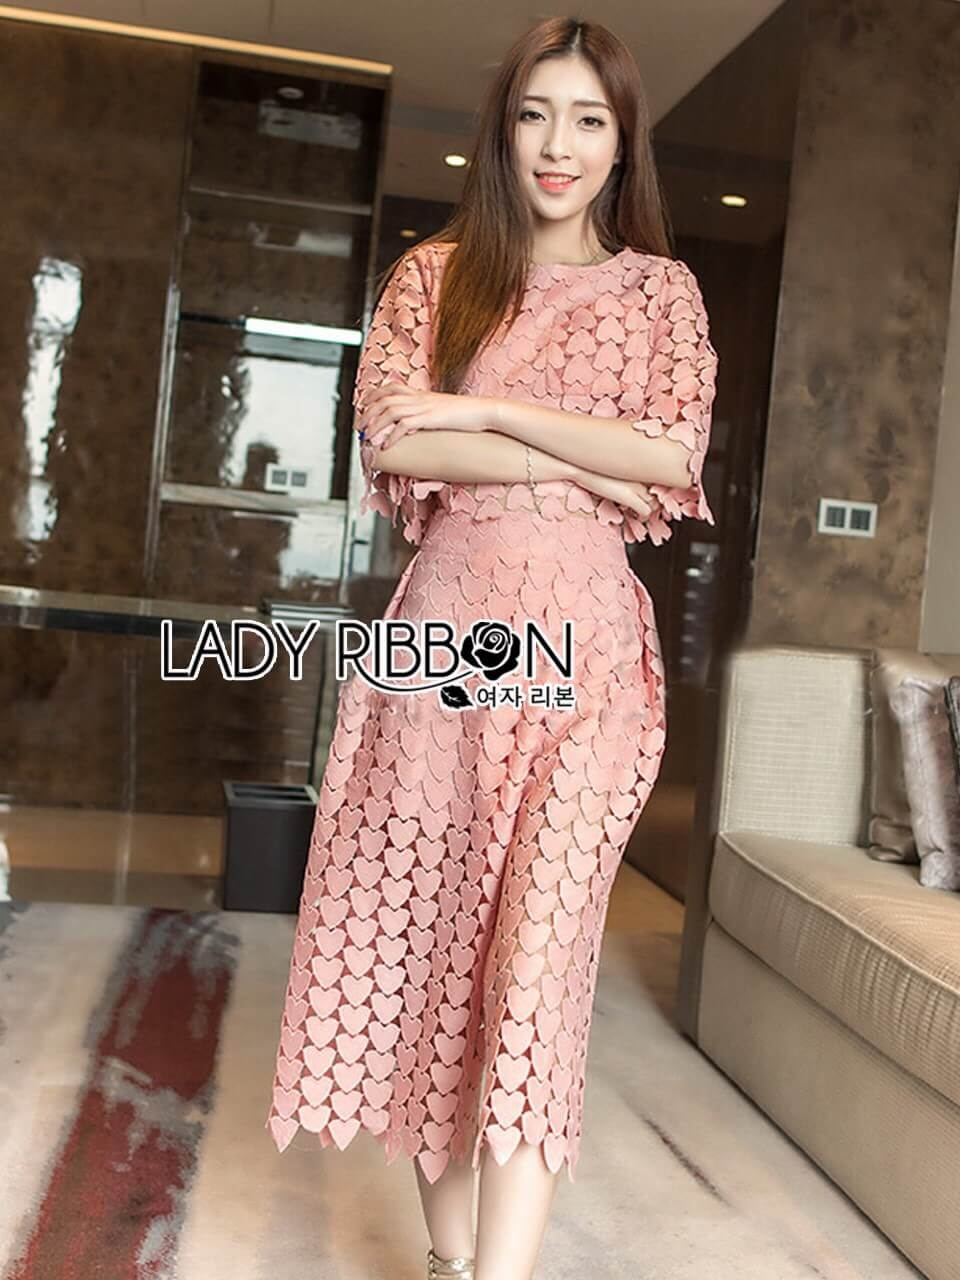 &#x1F380 Lady Ribbon's Made &#x1F380 Lady Charlotte Pinky Feminine Hearty Embroidered Set